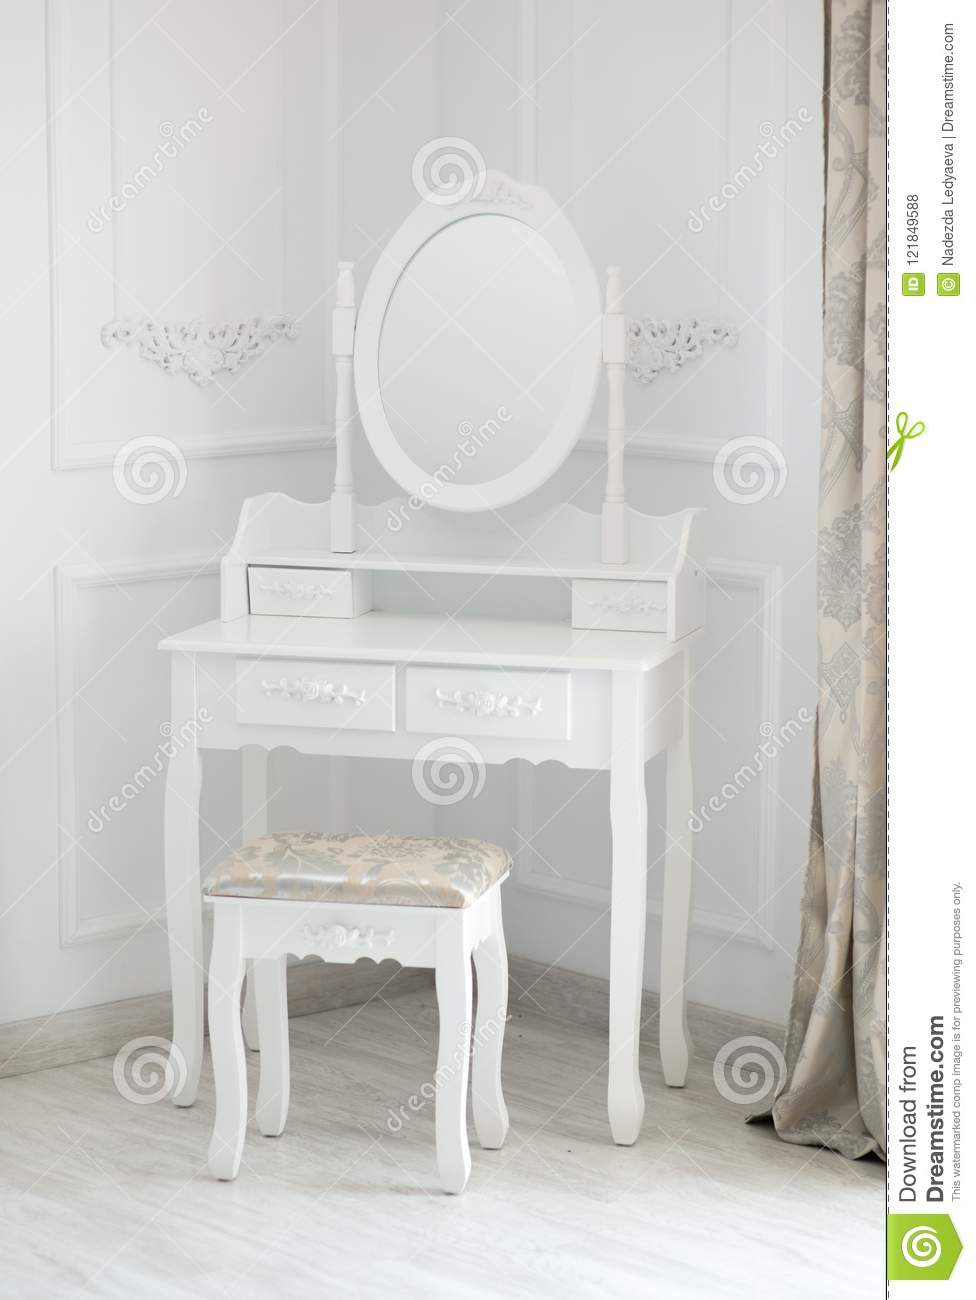 Makeup Table Chair Boudoir Table Make Up Table With Mirror Stock Photo Image Of